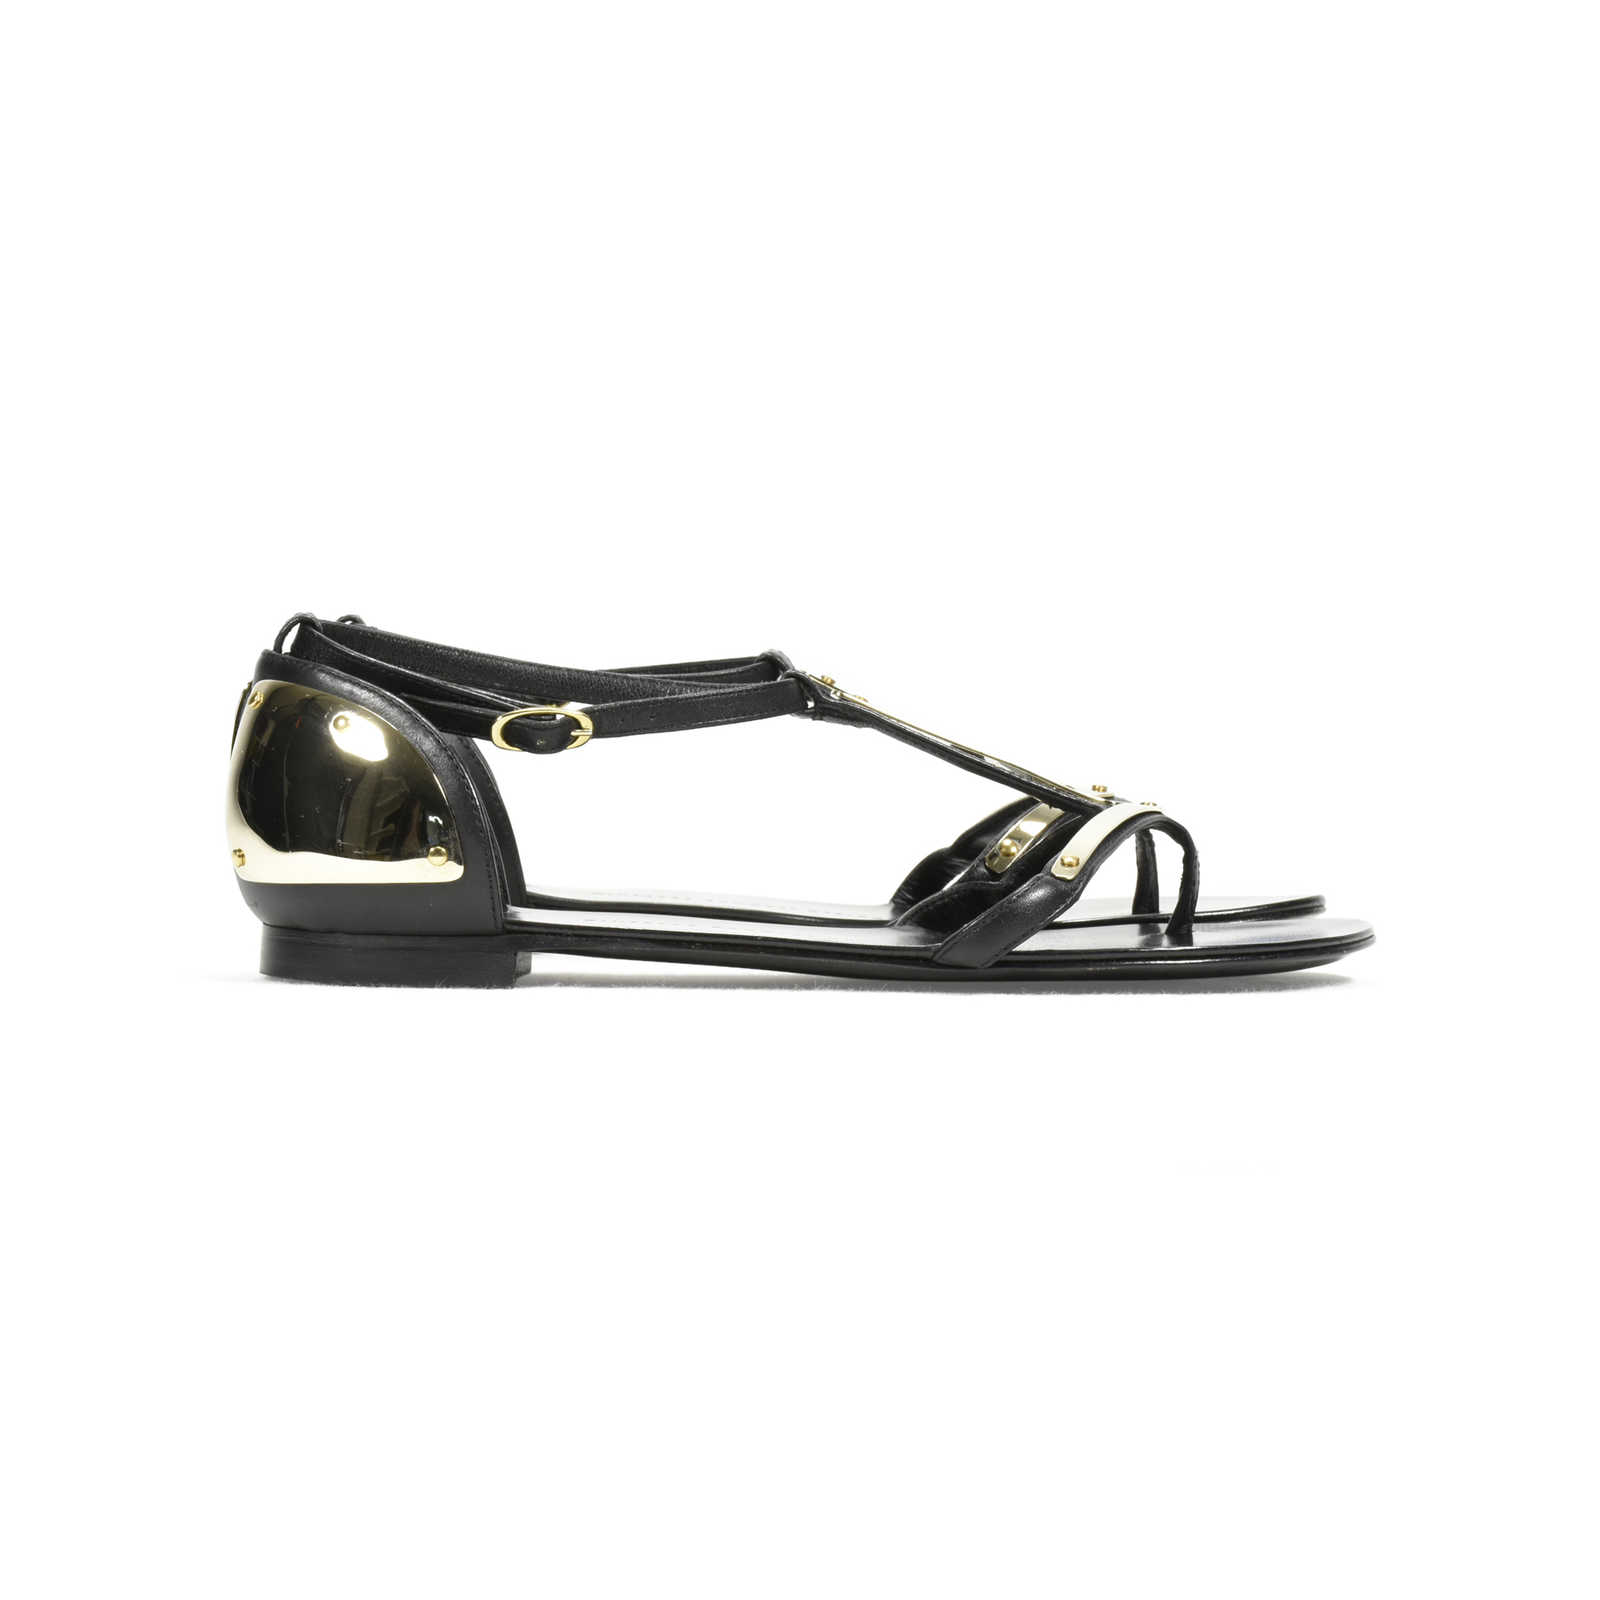 9052a159de594 ... Authentic Second Hand Giuseppe Zanotti Rock 10 Infradito Sandals  (PSS-369-00039) ...